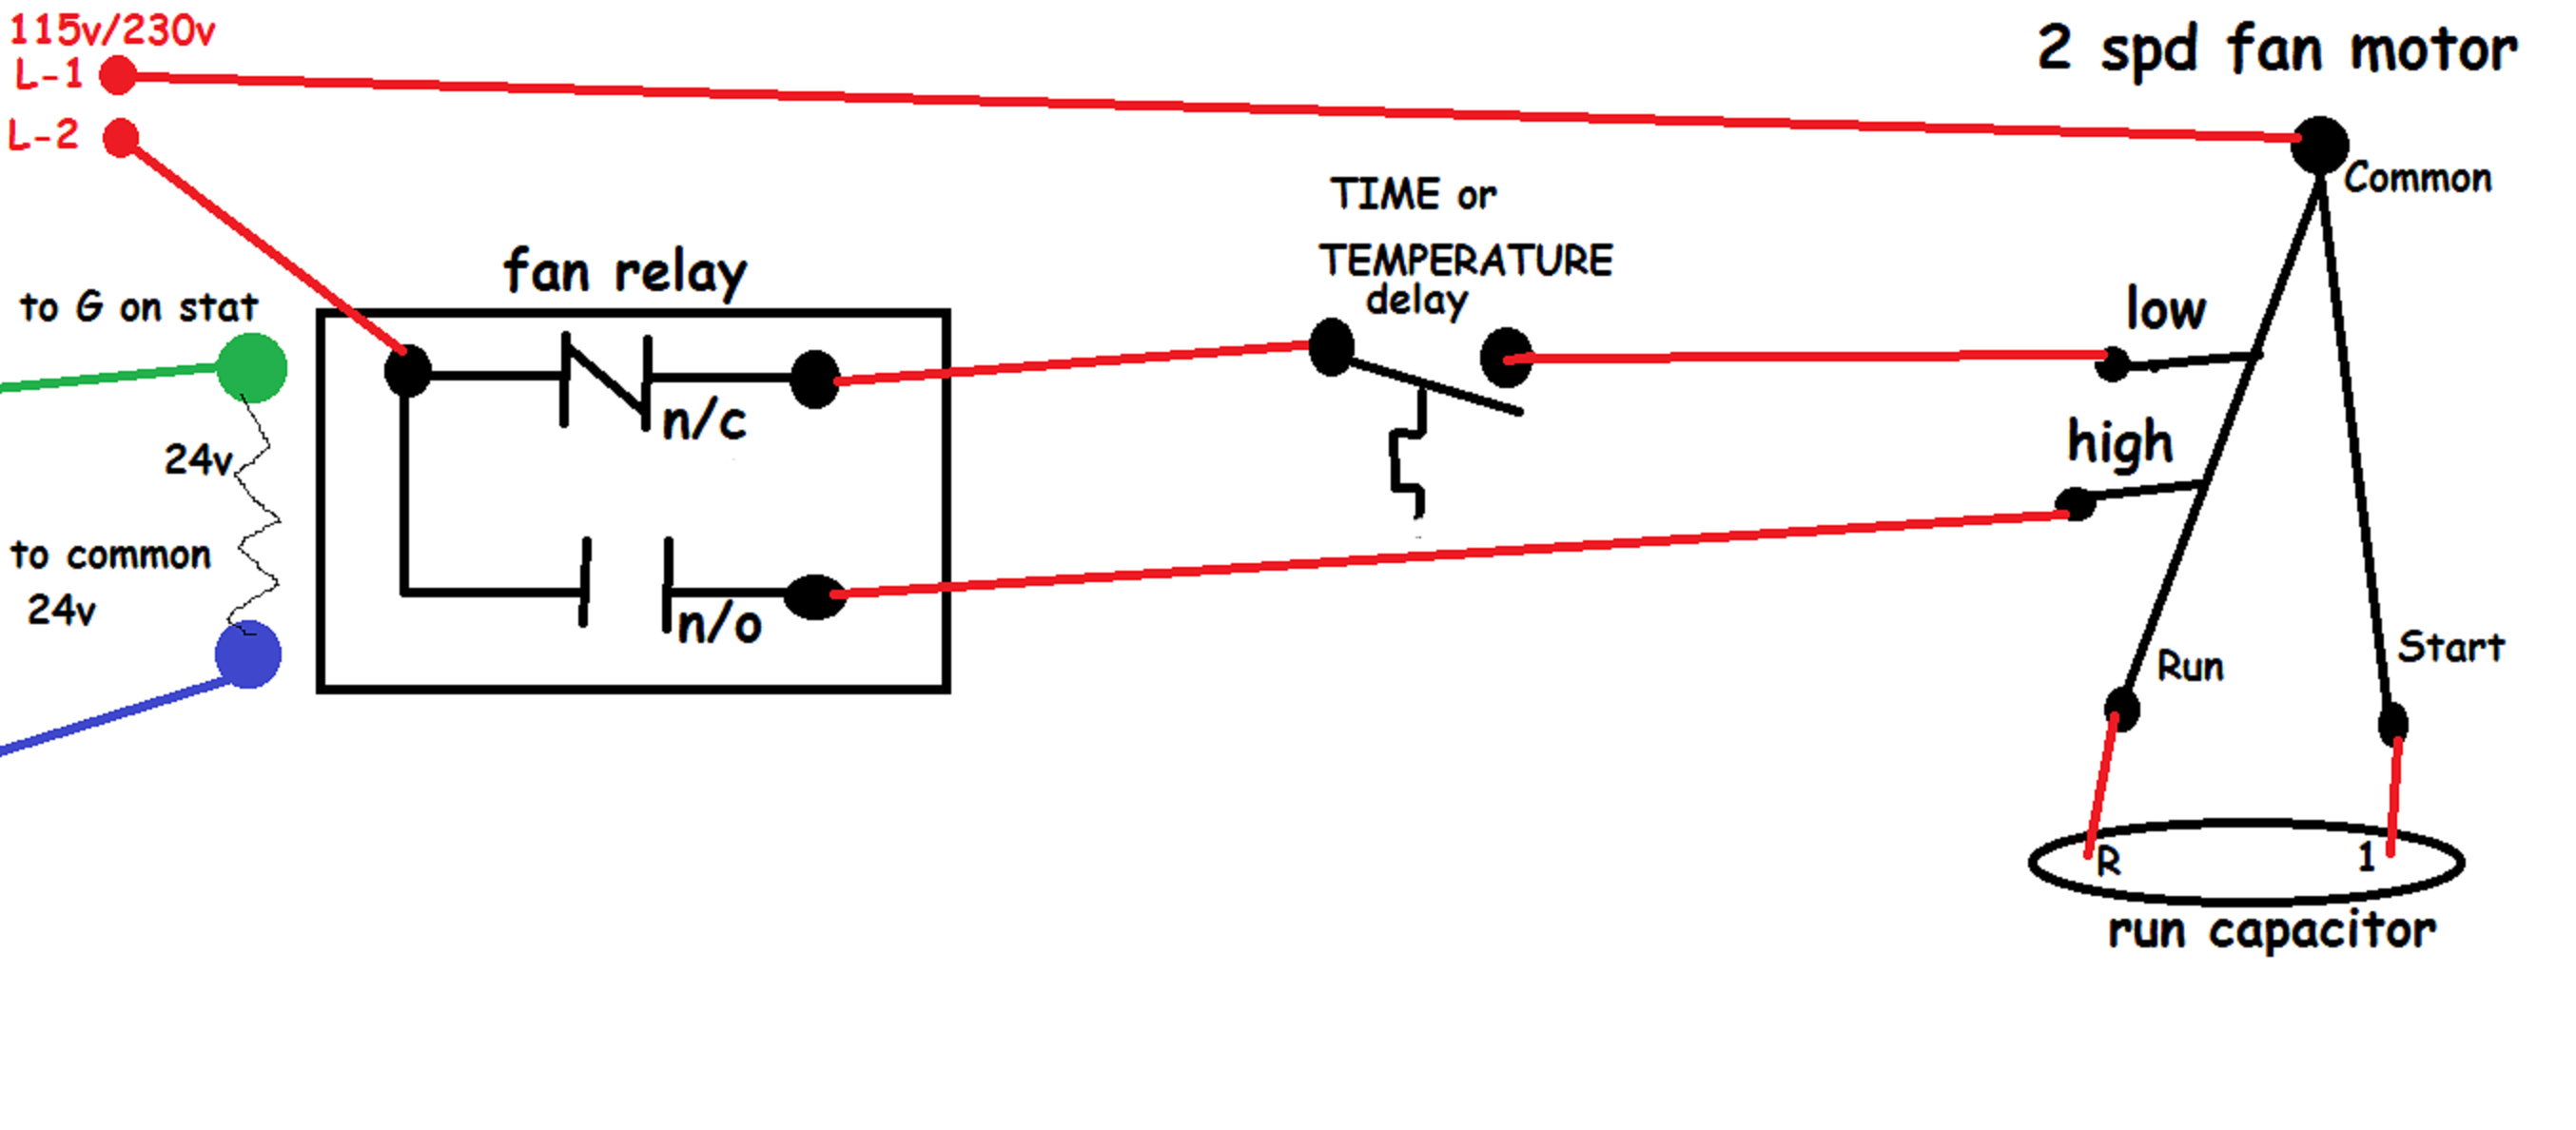 Hvac Heater Fan Relay Wiring - Get Wiring Diagram on